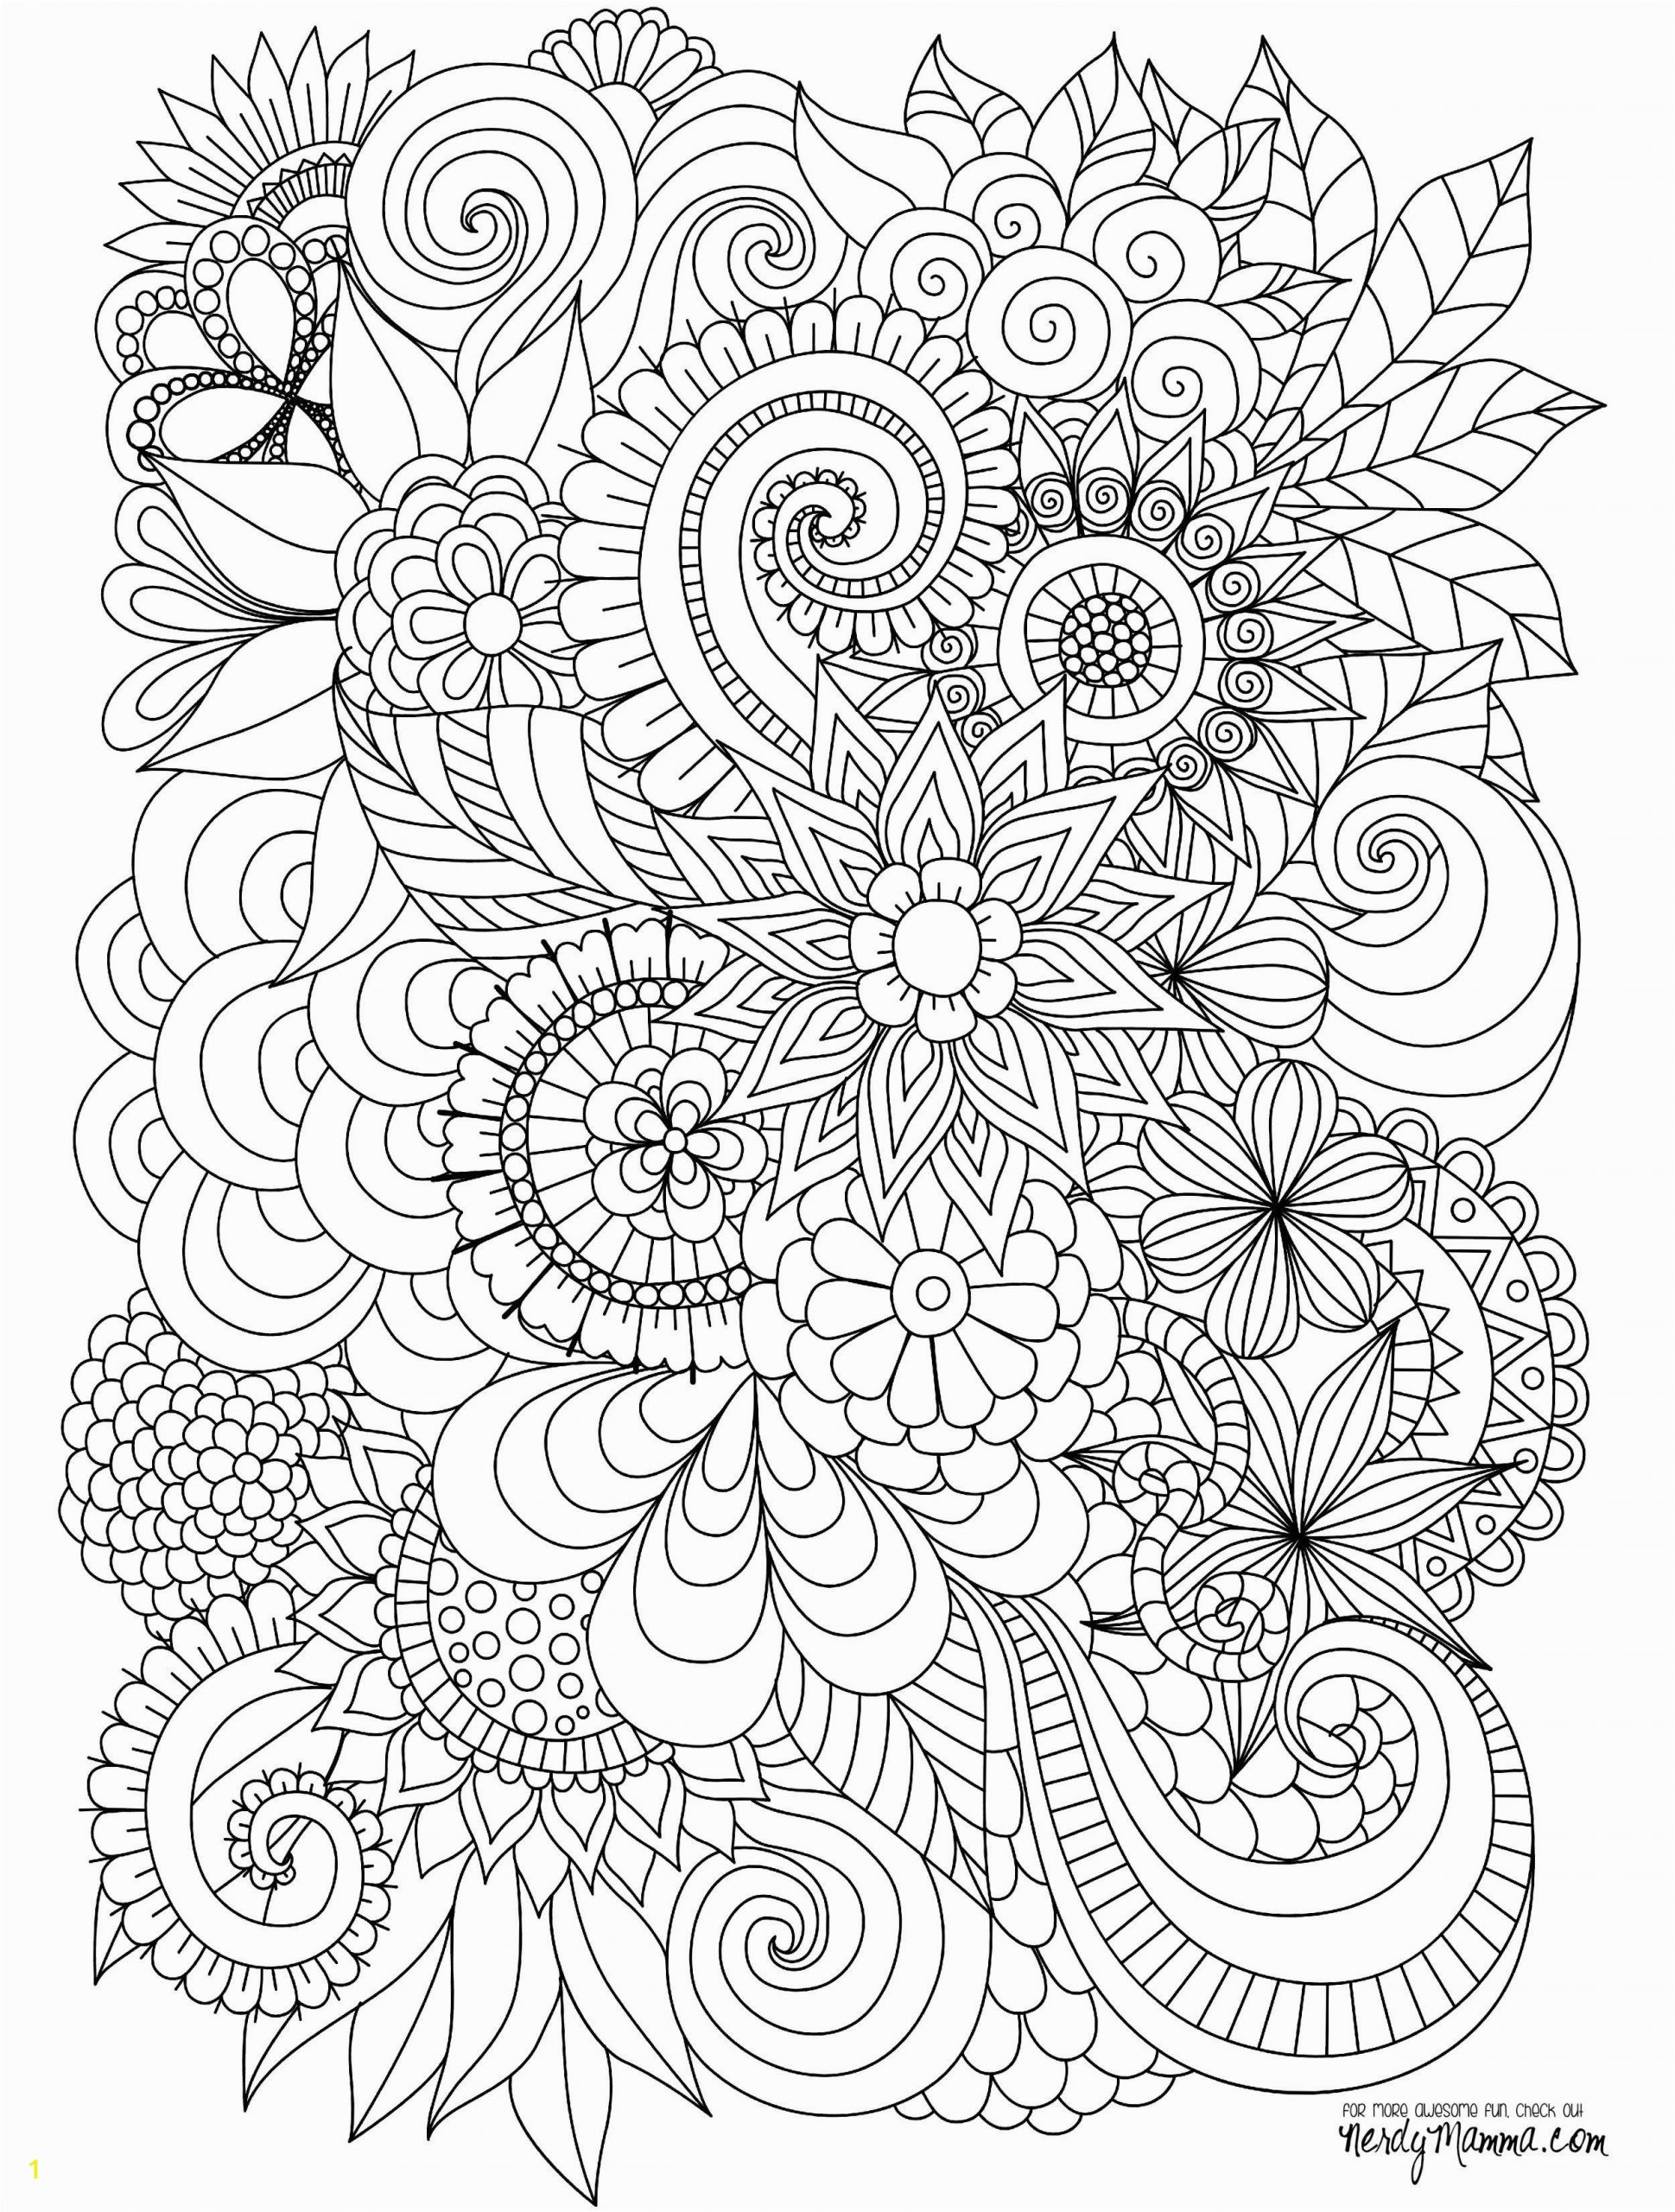 Free Printable Coloring Pages for Adults 11 Free Printable Adult Coloring Pages